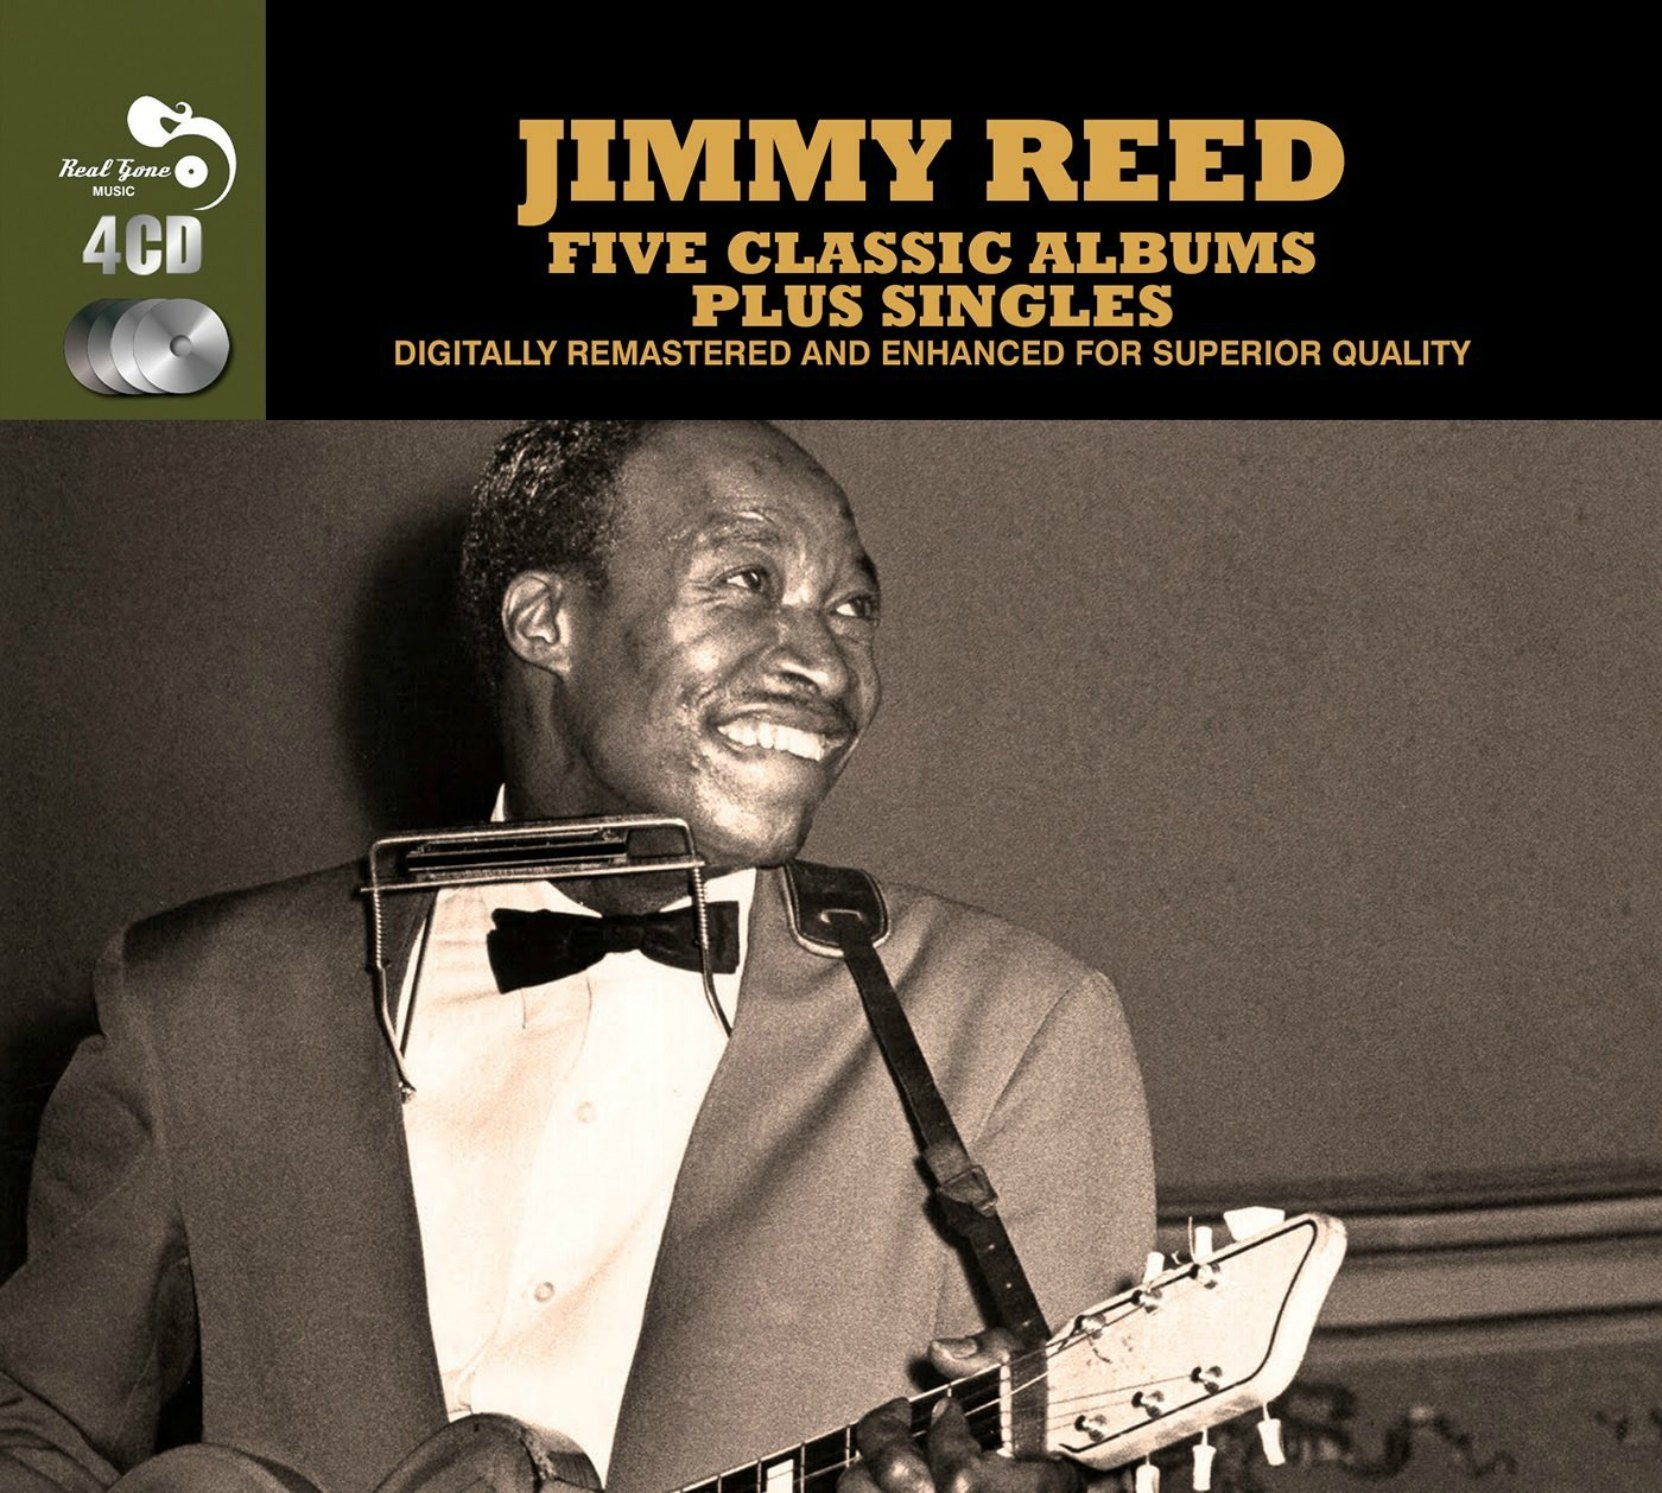 CD cover, Jimmy Reed, Five Classic Albums Plus Singles, a 4 CD set released by Real Gone Music Company